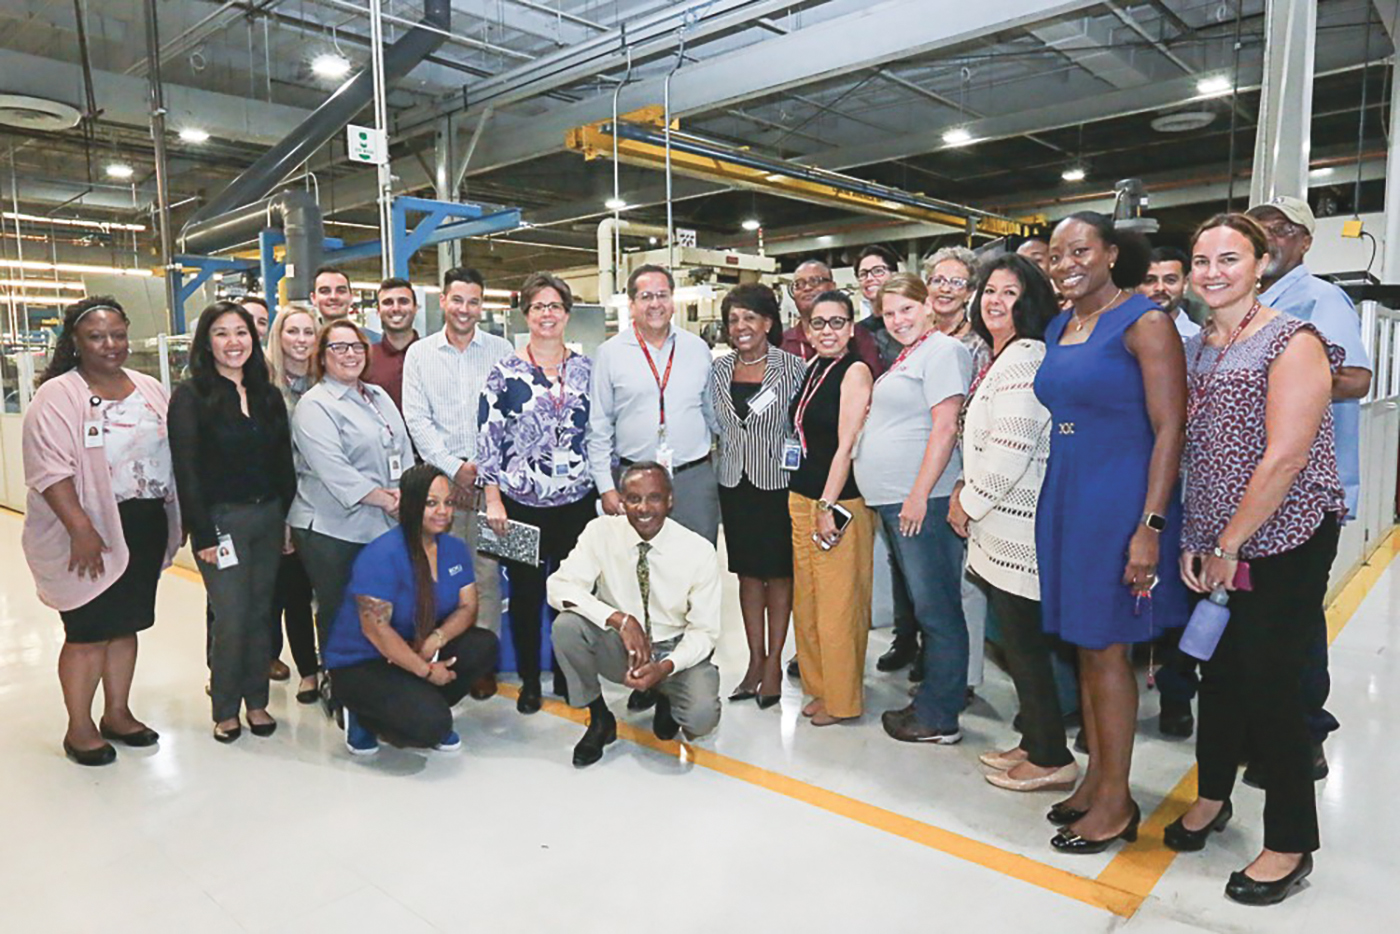 Congresswoman Waters meets with staff at the Moog Aircraft Group's Military Aircraft Customer Support Center in Torrance, CA. (Photo courtesy of Moog Aircraft Group)